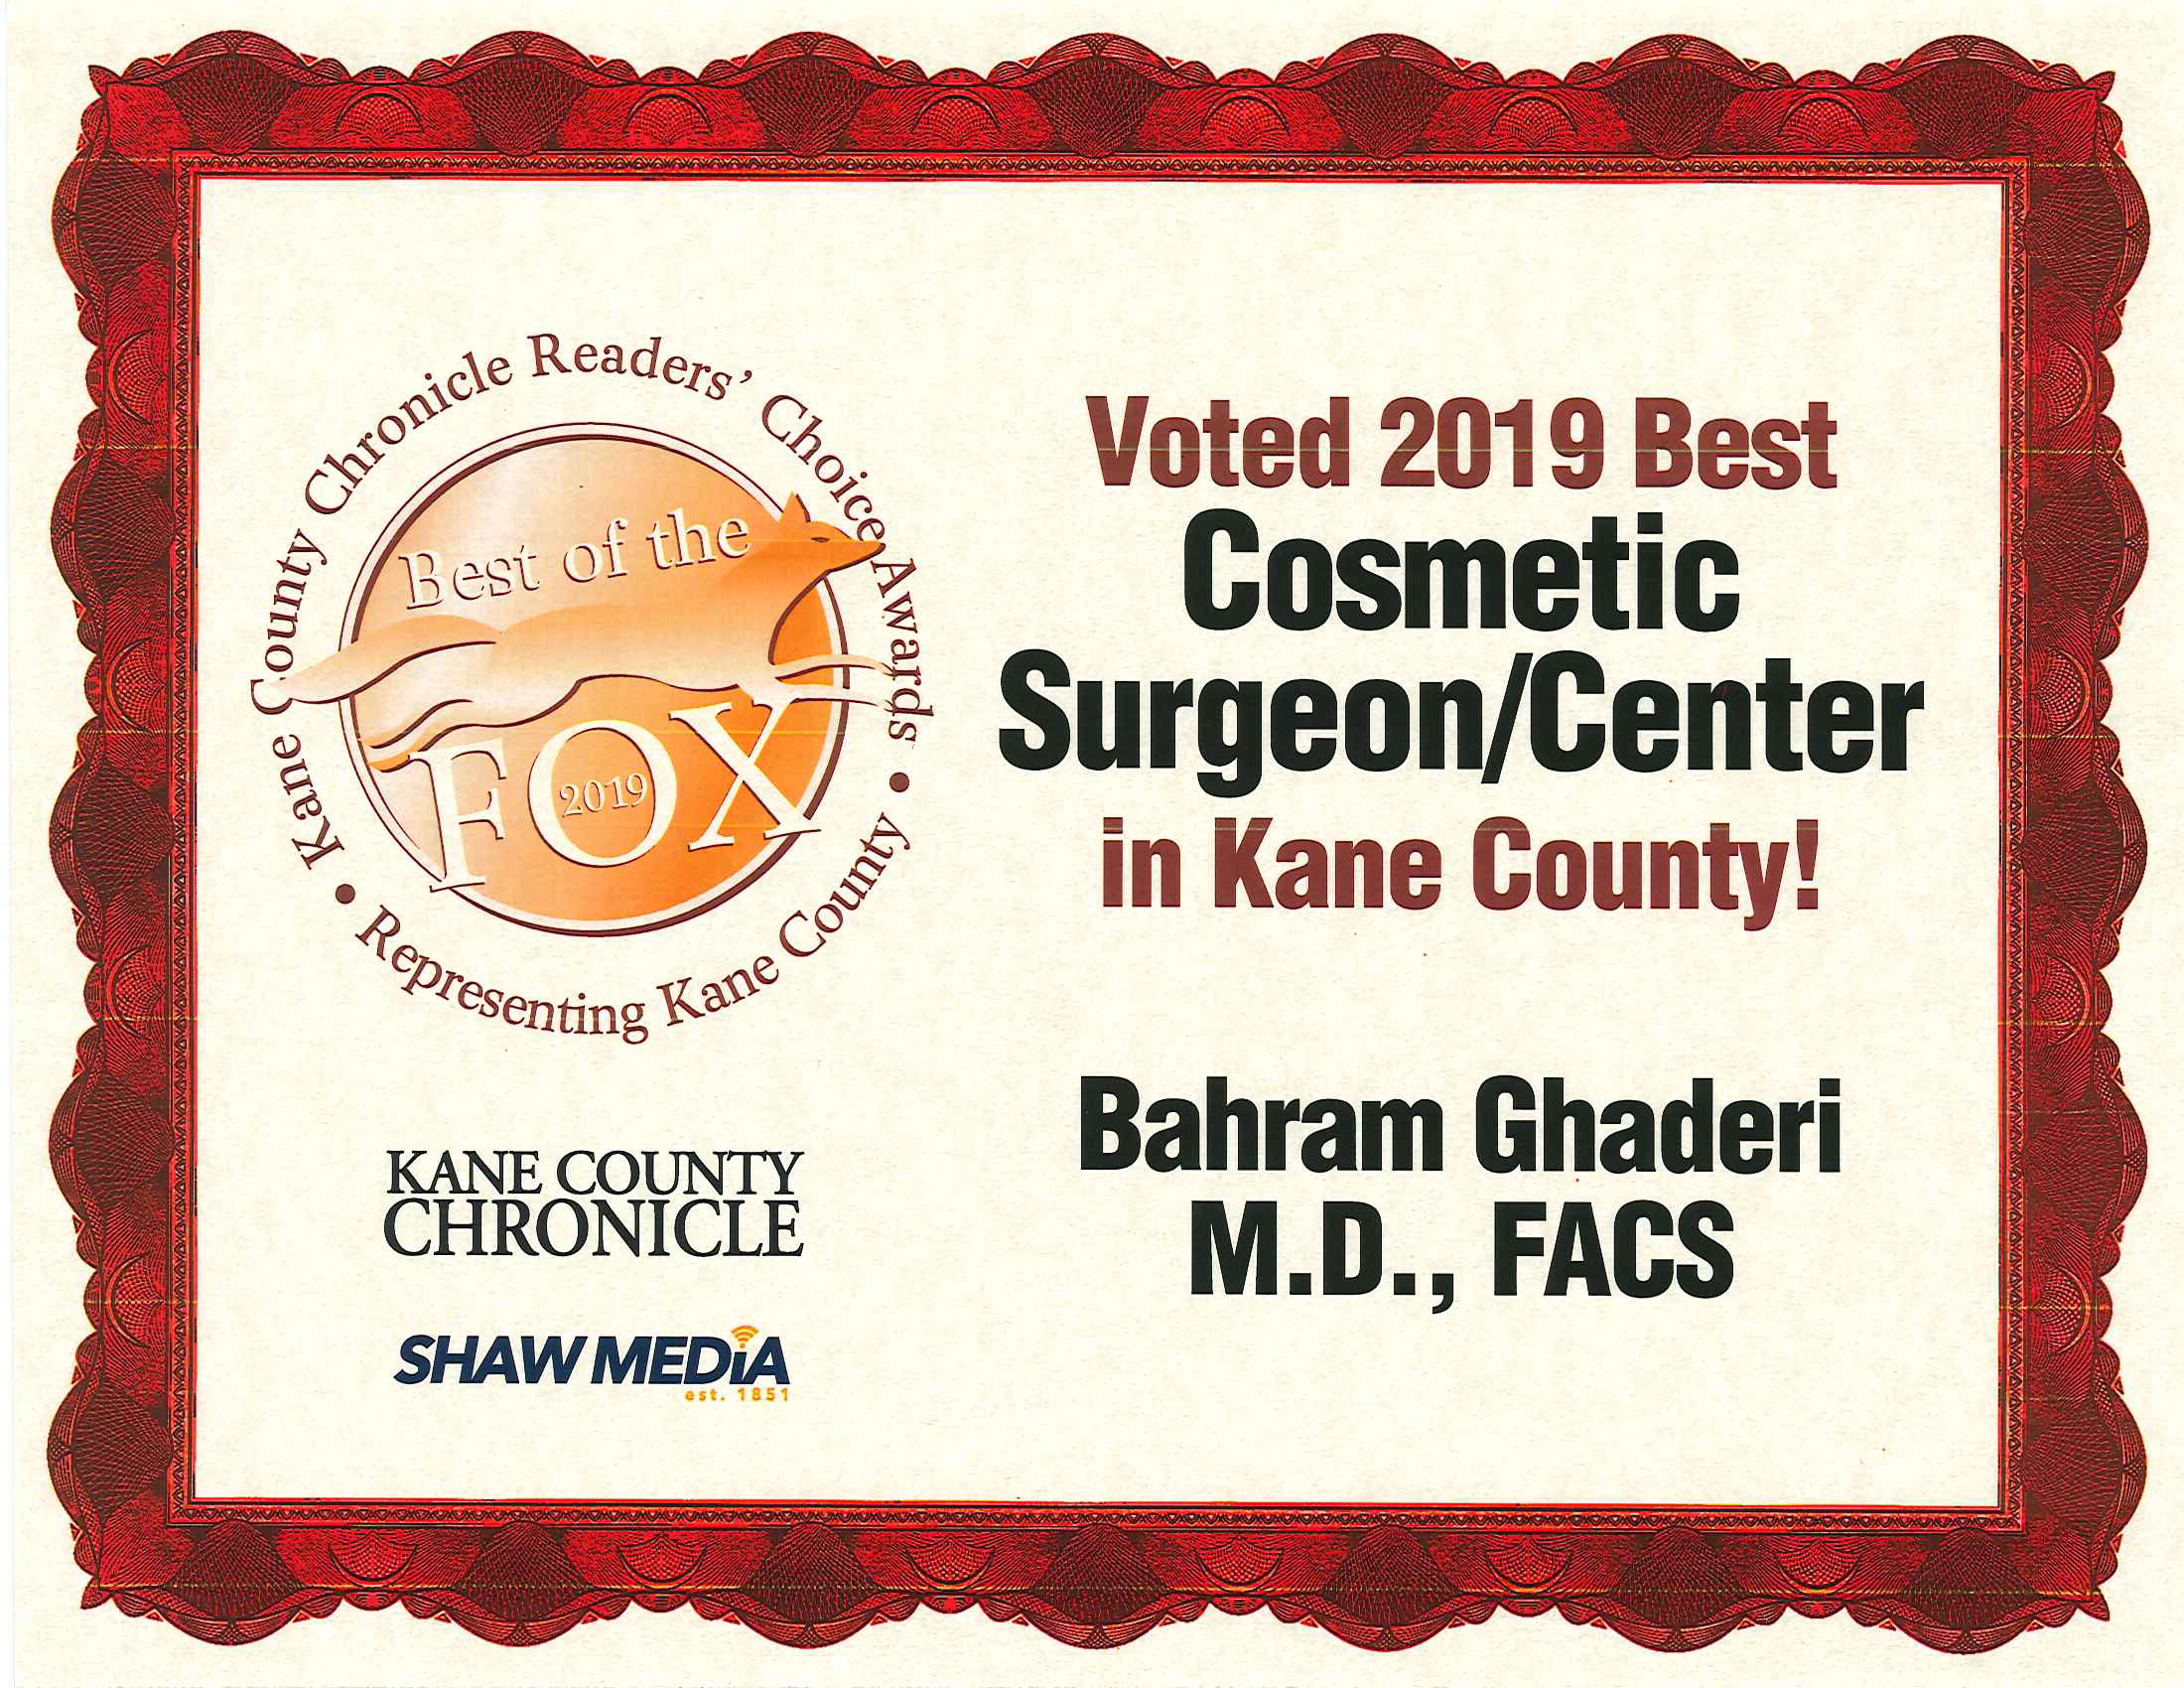 2019 Bahram Ghaderi Plastic Surgeon Voted Kane County Best Cosmetic Surgeon